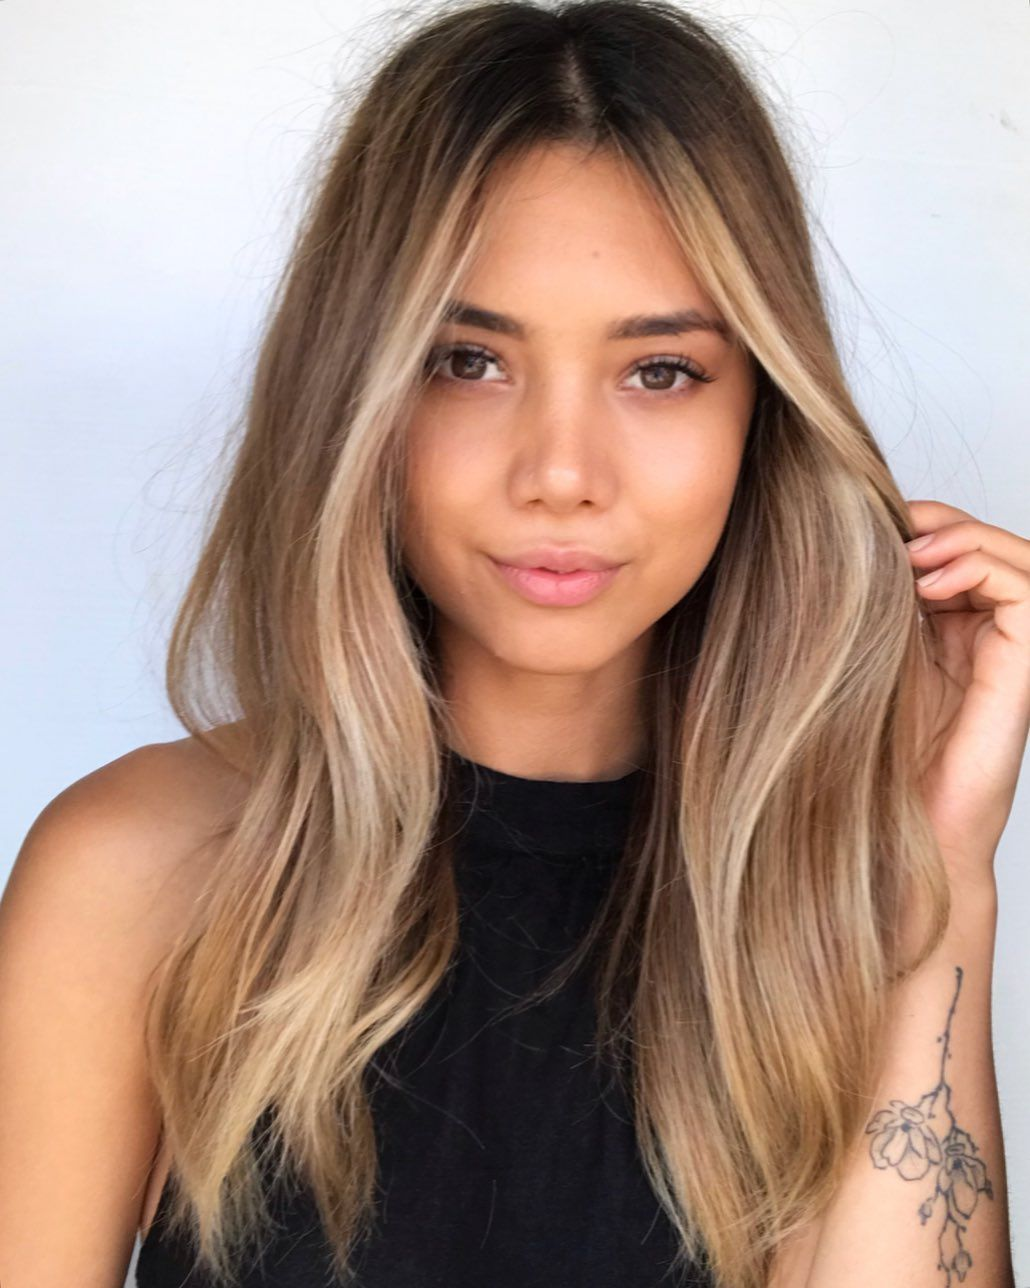 US $24.0 60% OFF|MRSHAIR Clip In Human Hair Extensions Machine Made Remy Straight Hair #60 Blonde Brown Natural Color Hair 7pcs Brazilian Hair|clips black|clip in hairclip in hair extensions - AliExpress